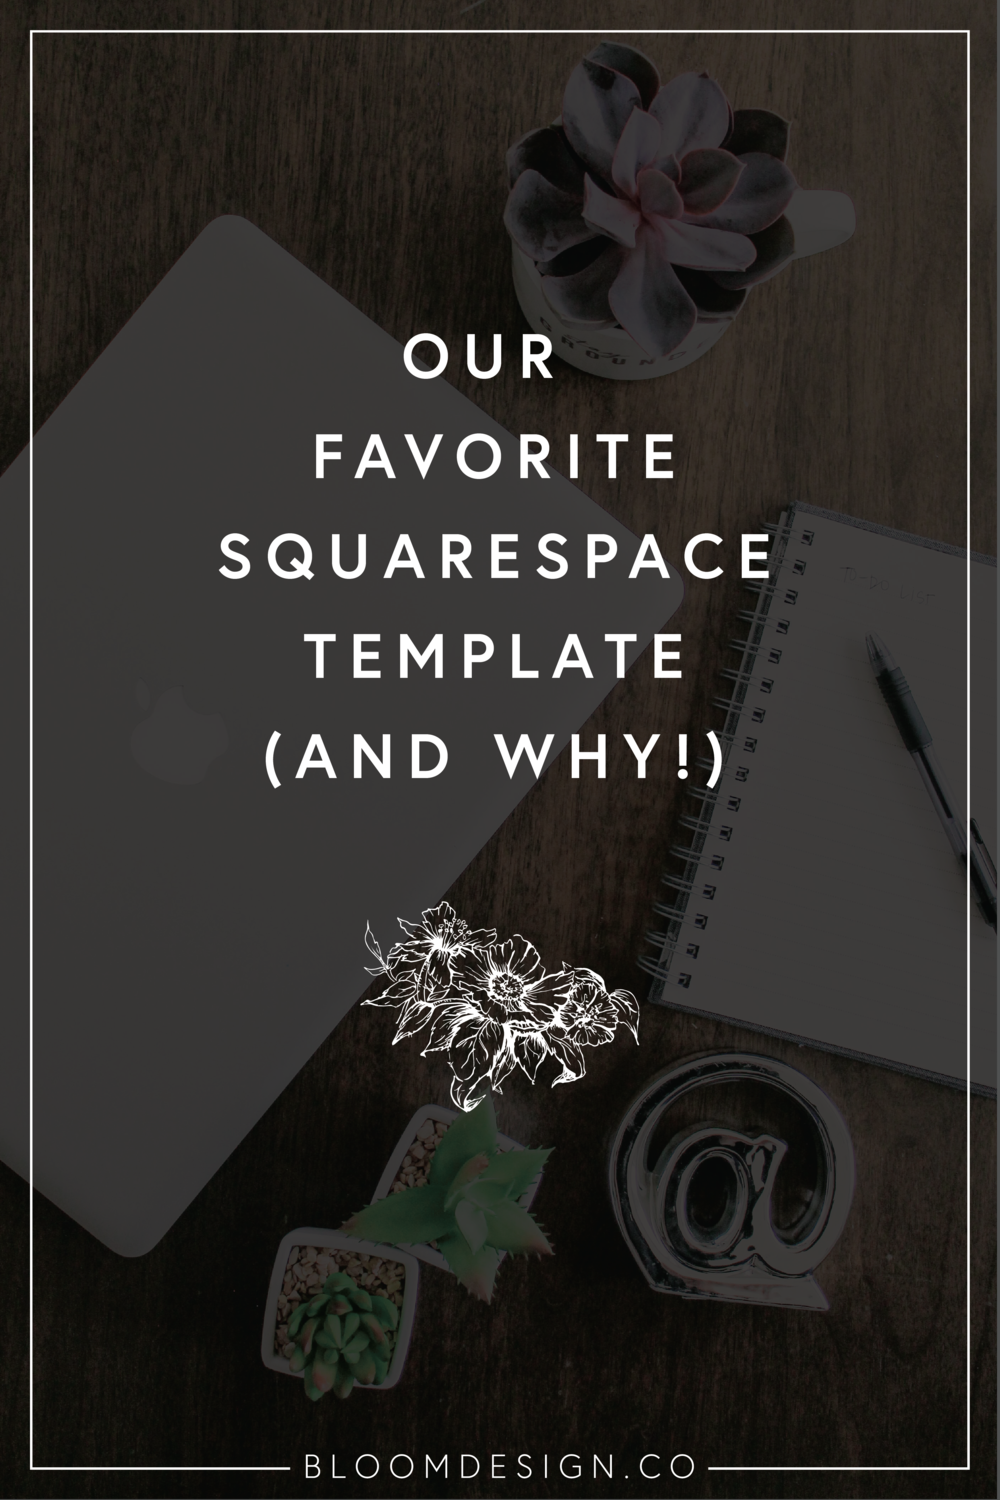 Our Favorite Squarespace Template (And Why)